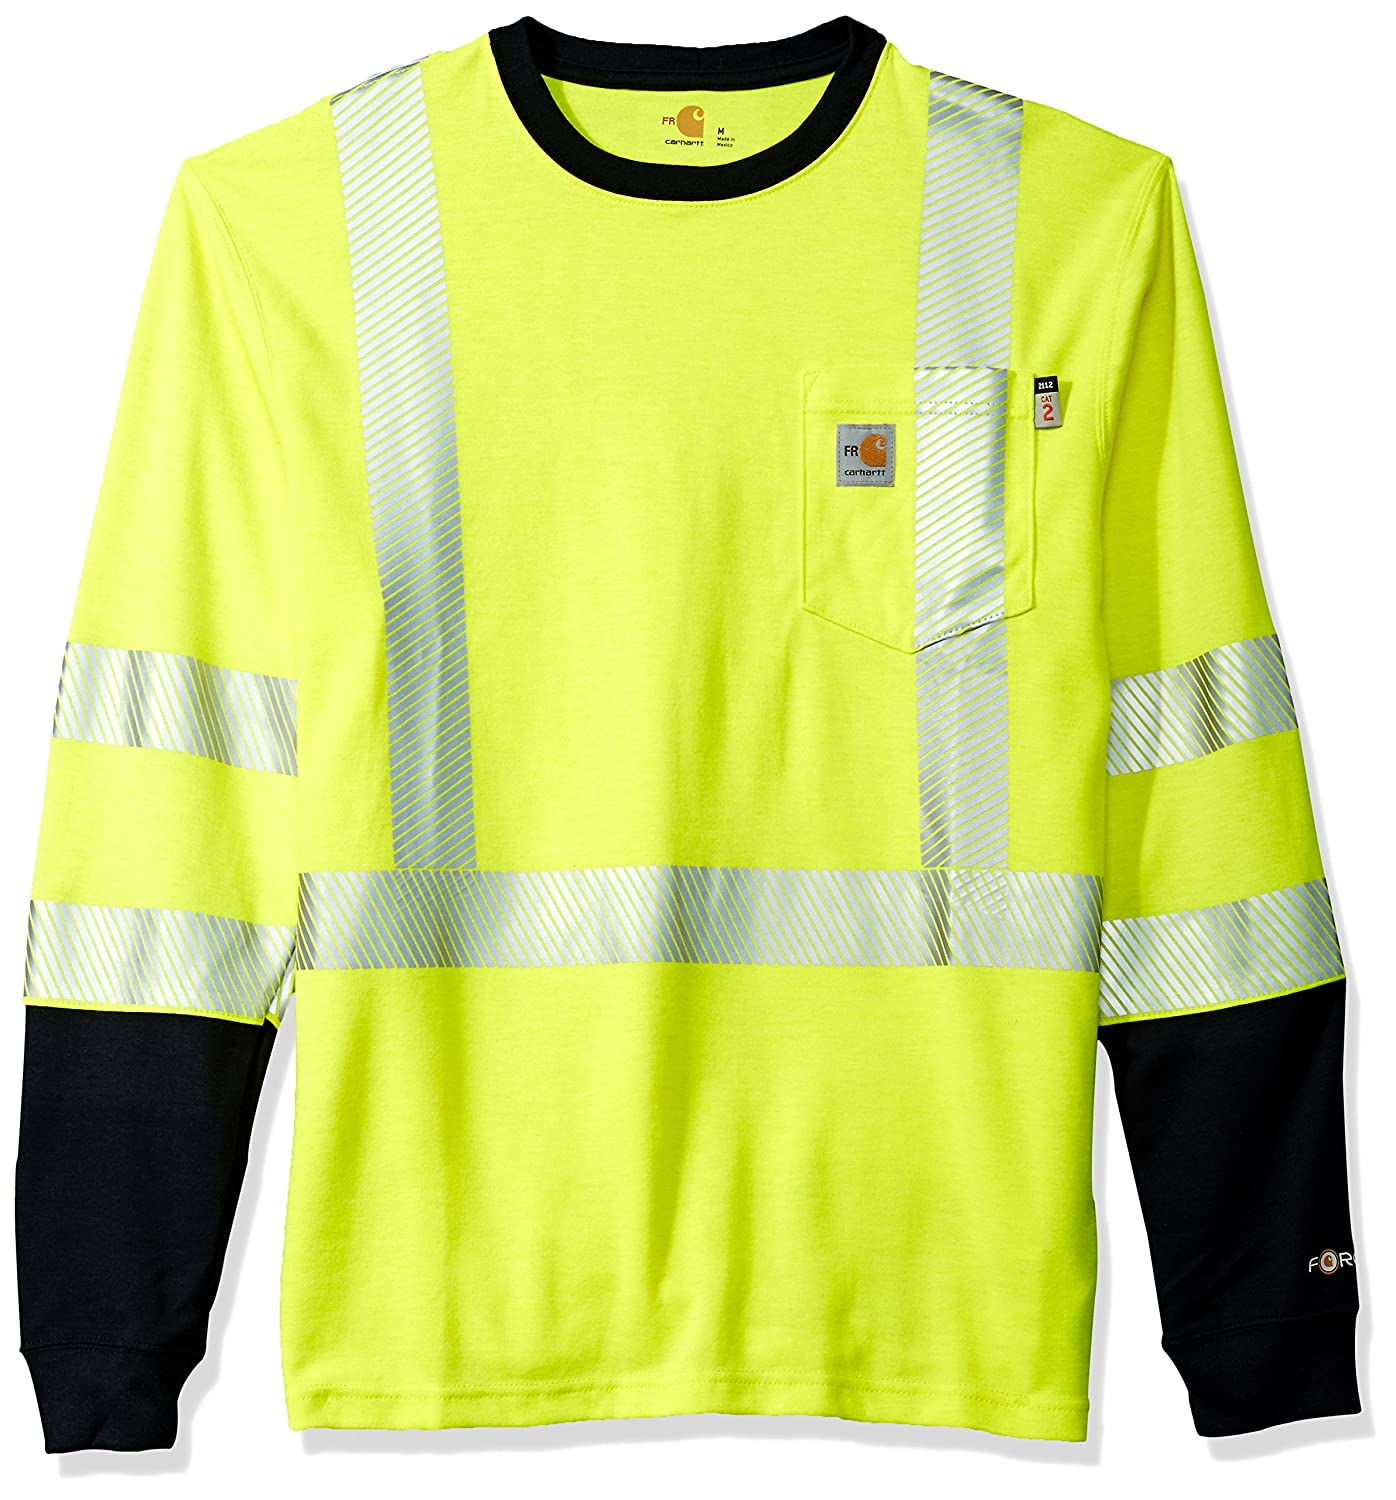 6272e4c3 Carhartt High Visibility T Shirts – EDGE Engineering and Consulting ...